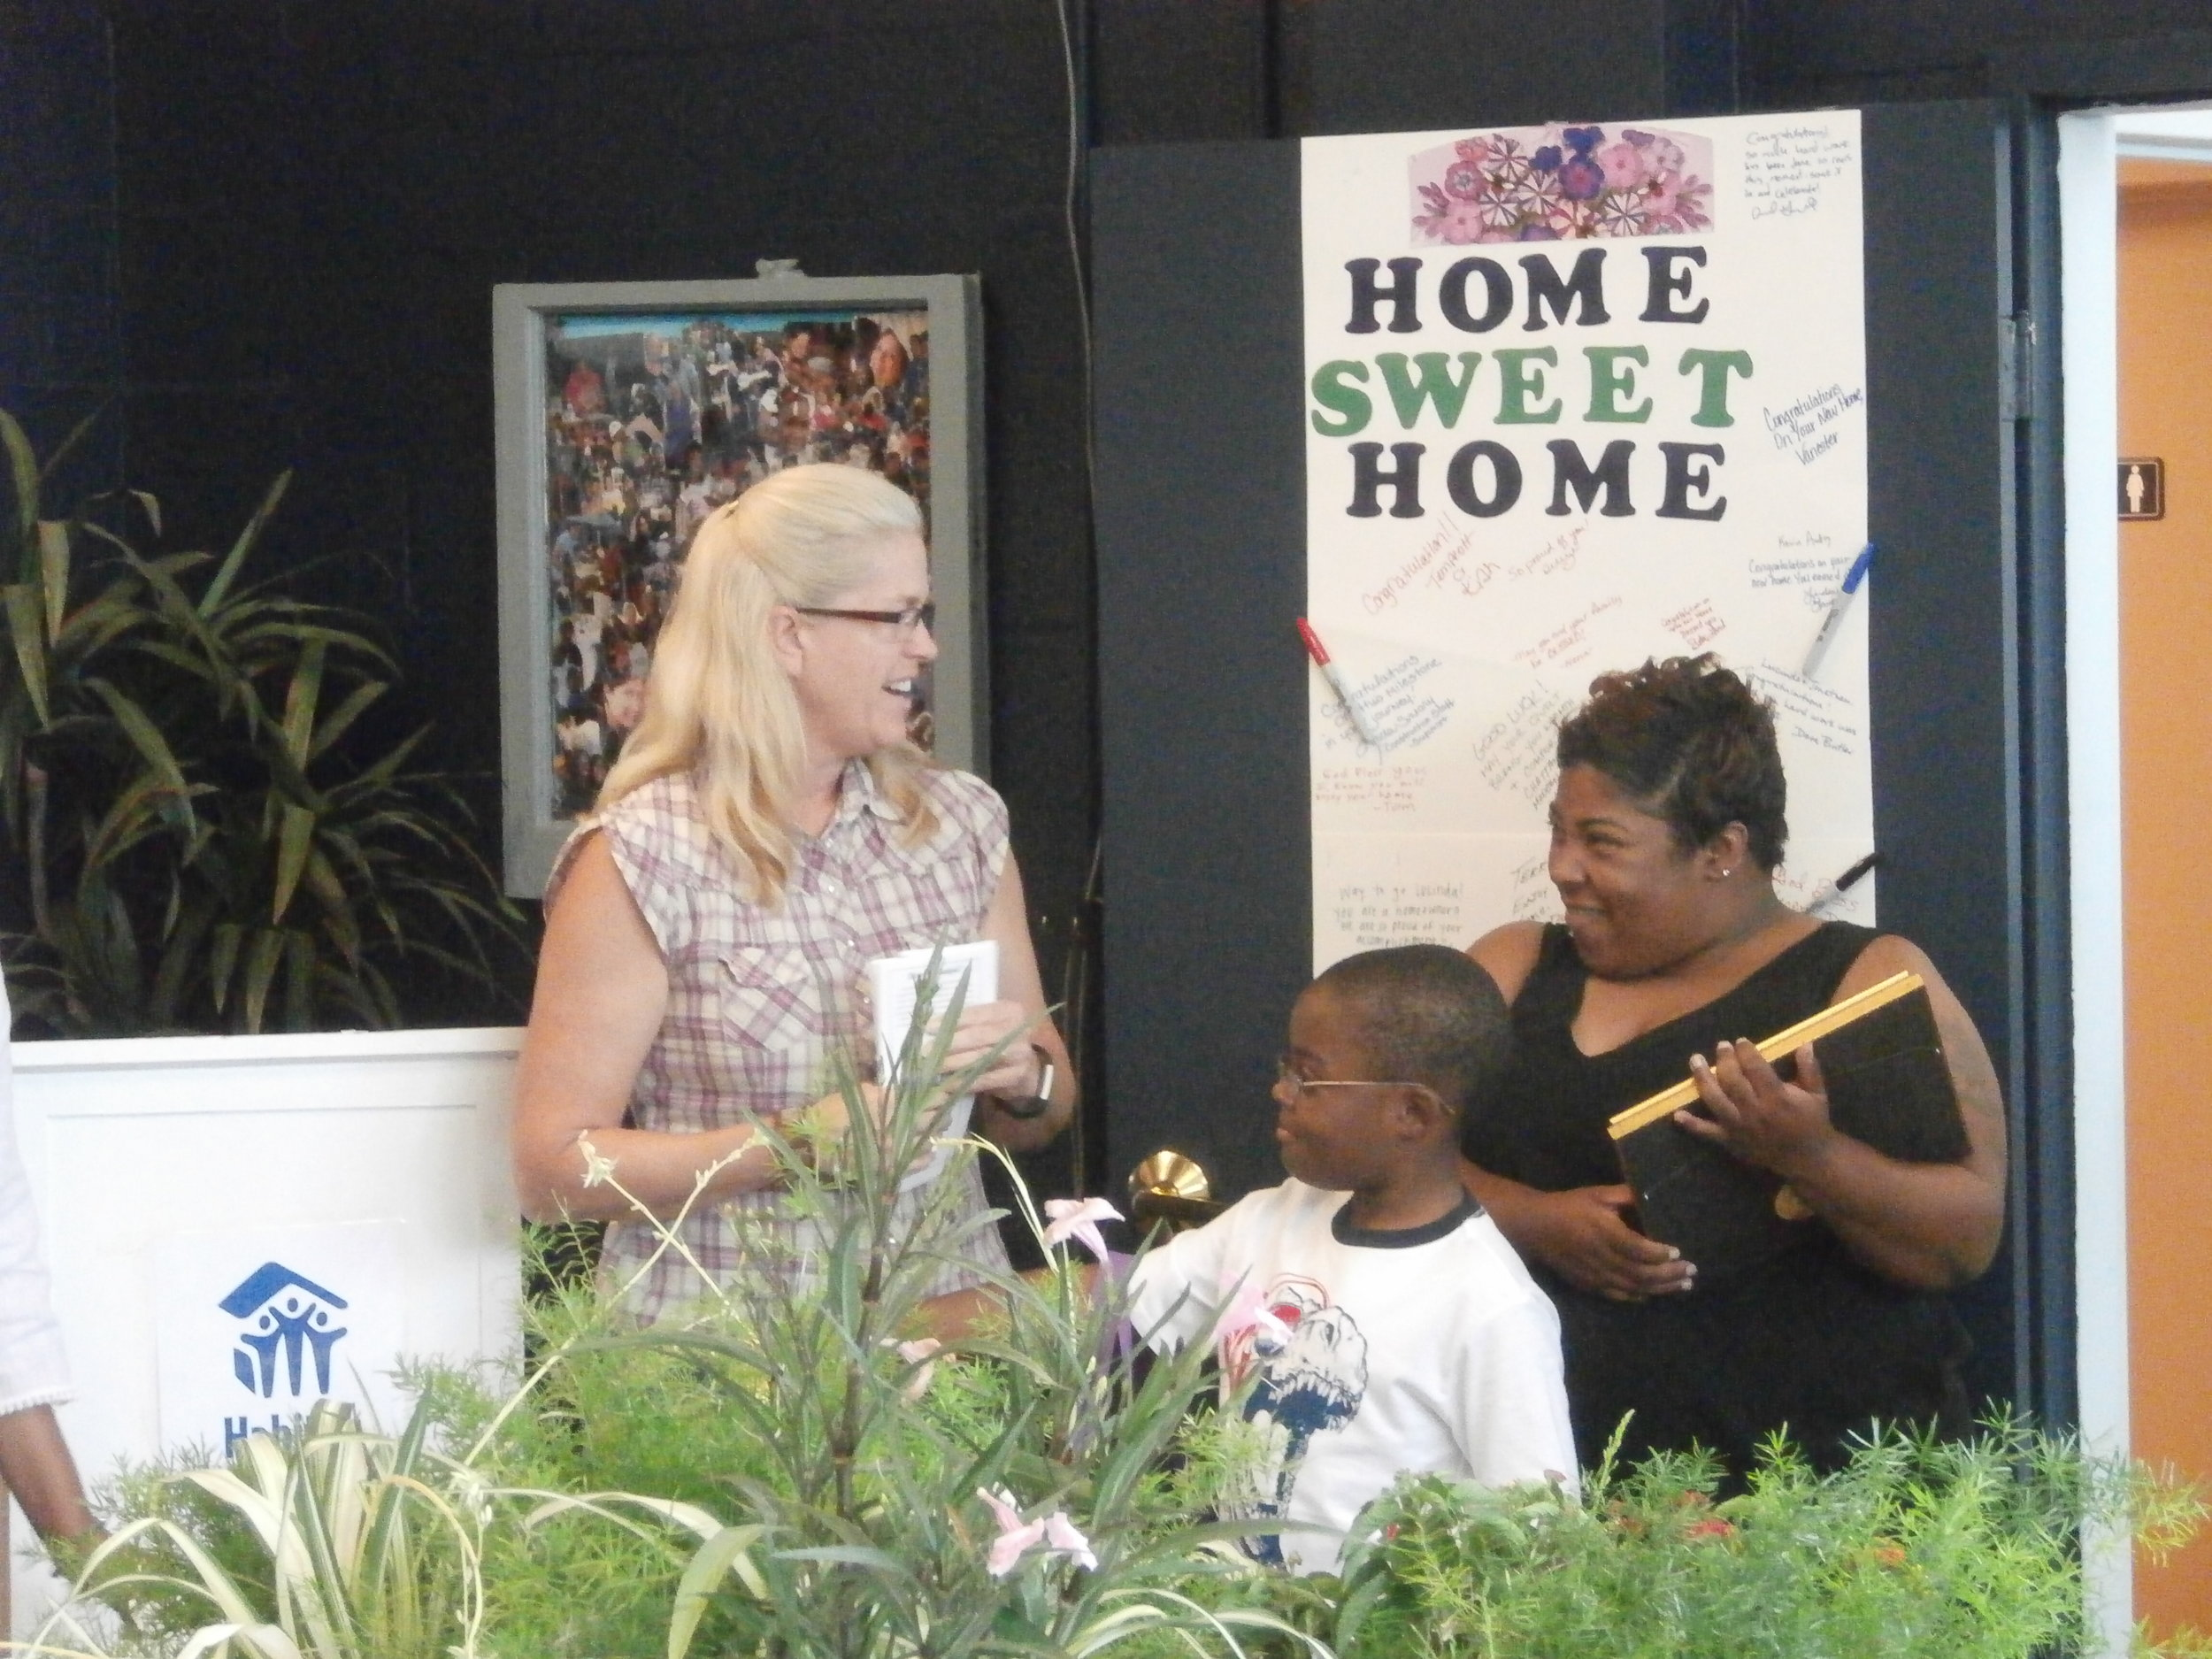 Sara congratulates homeowner Lucinda Watkins and her son on their new home